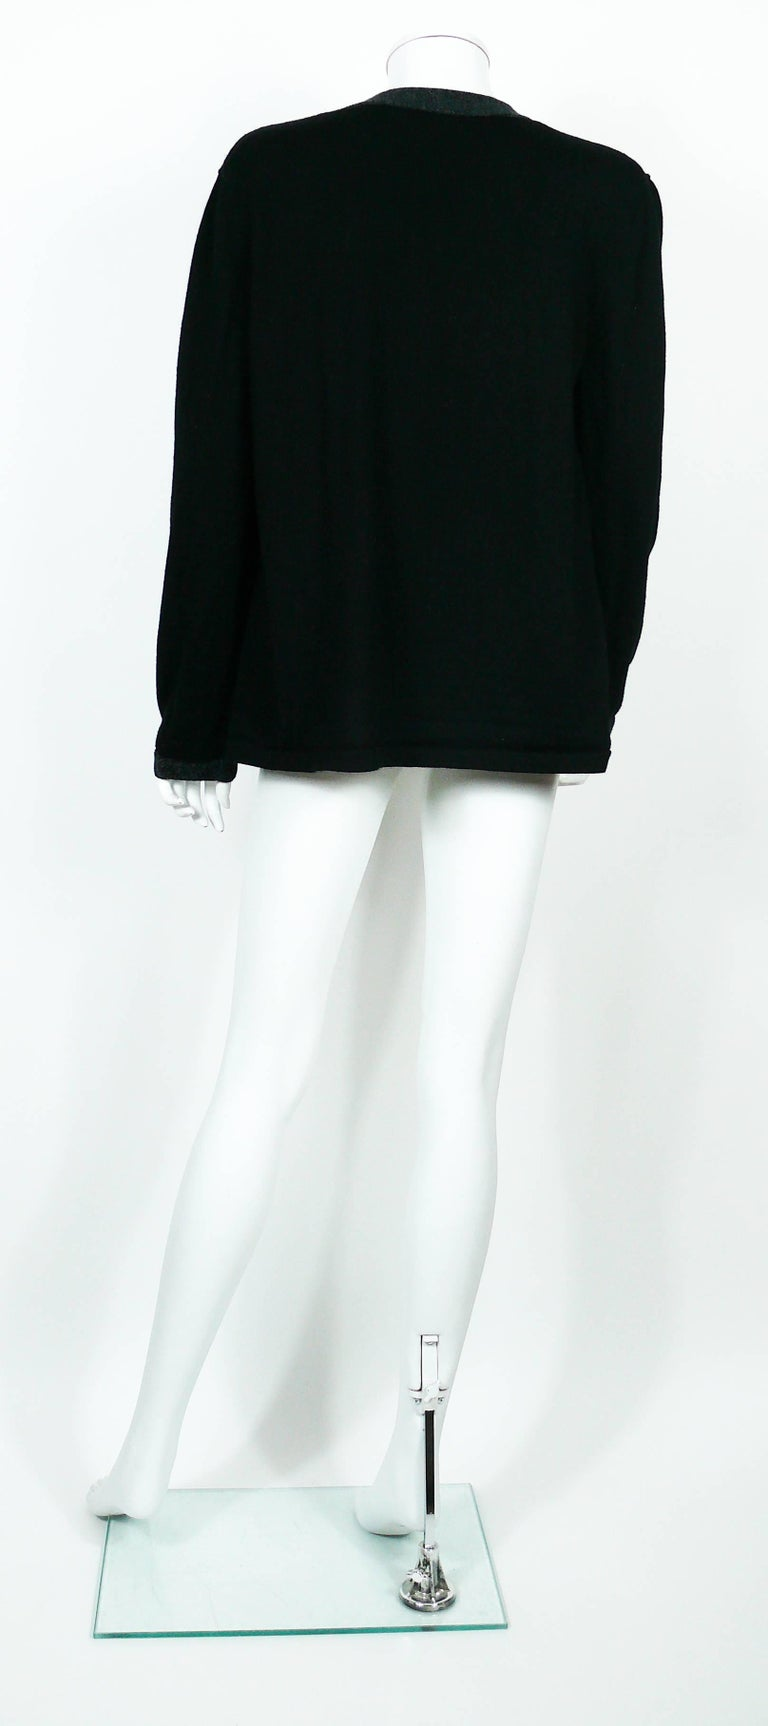 Chanel Employee Uniform Black Wool Cardigan with CC Logo Size XL For Sale 3